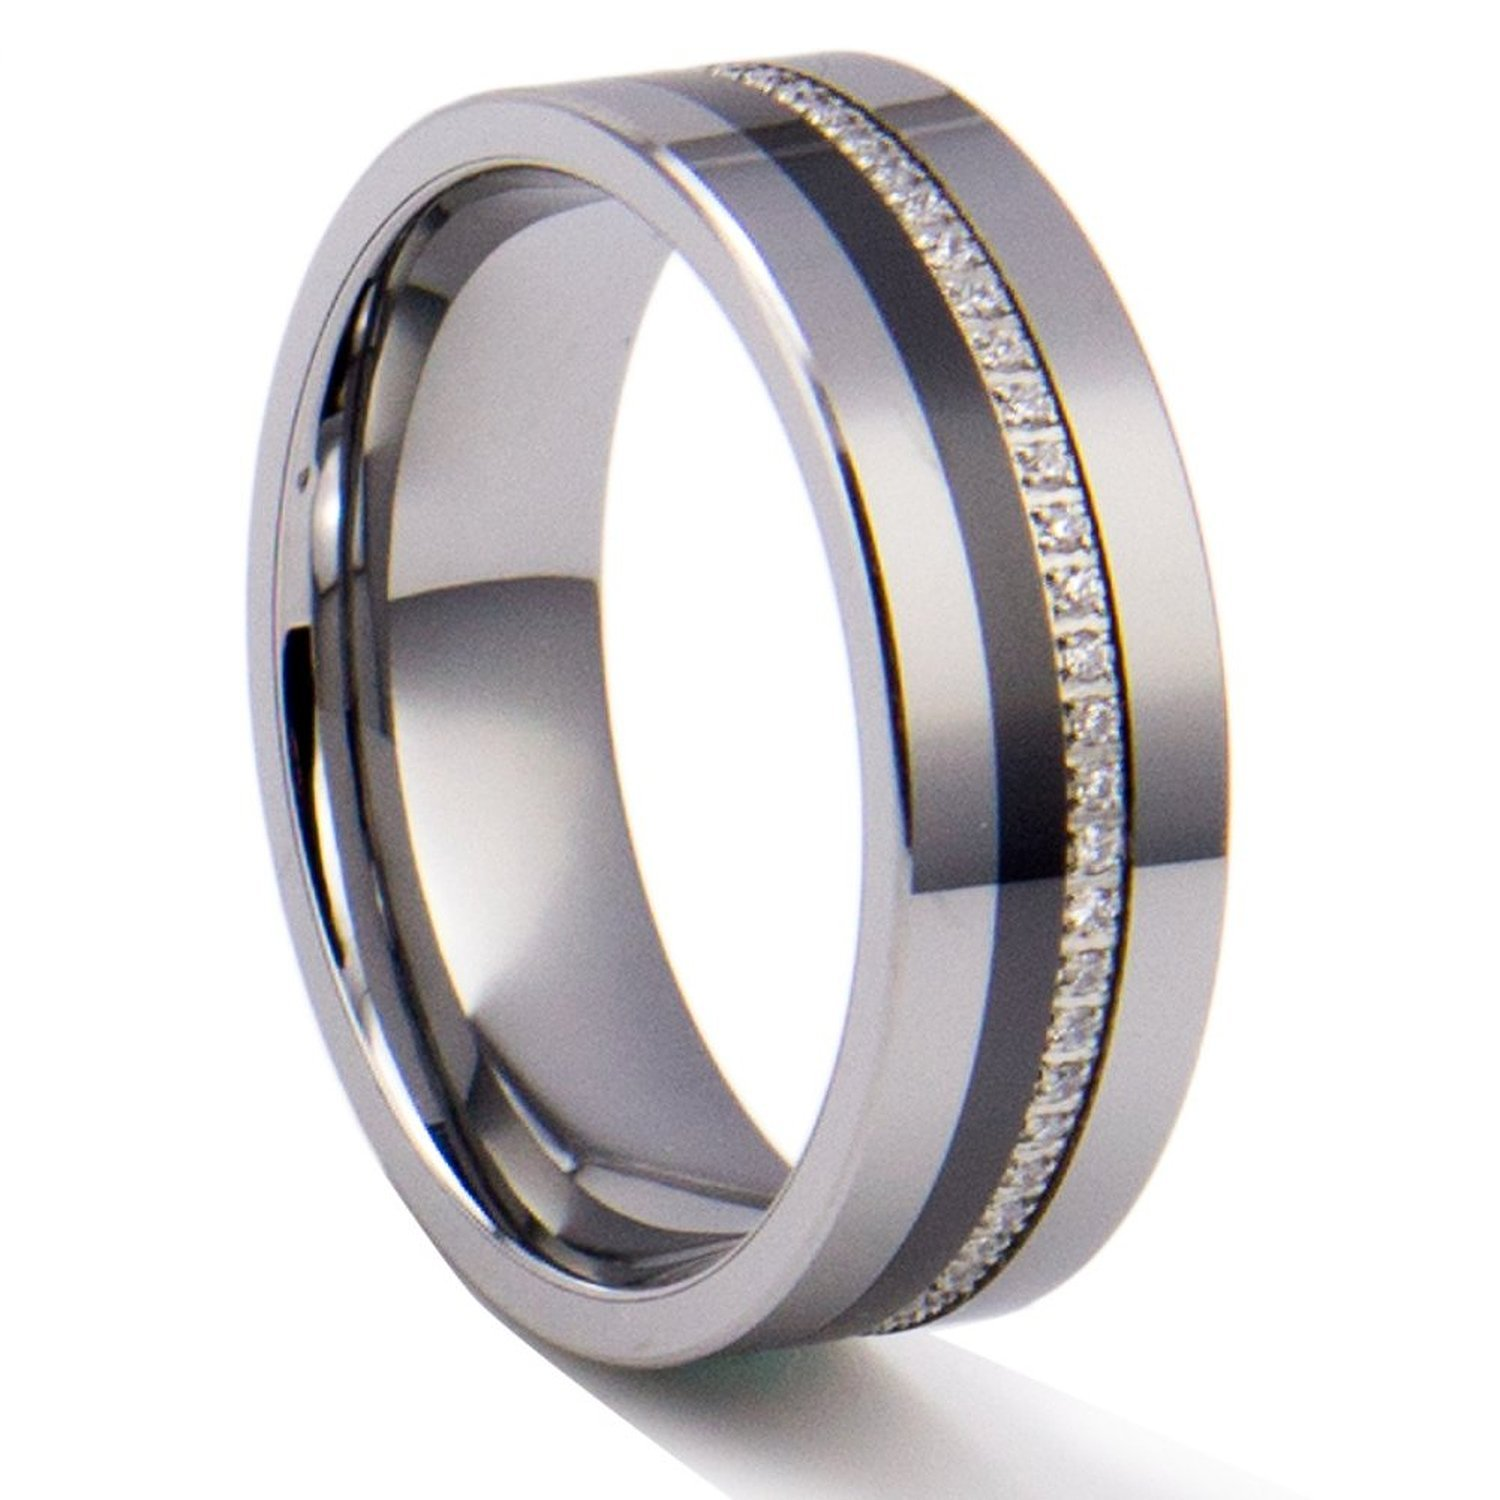 8mm Men's Tungsten Wedding Engagement Ring Band With. White Diamond Rings. Betterfly Wedding Rings. Grecian Engagement Rings. Person Rings